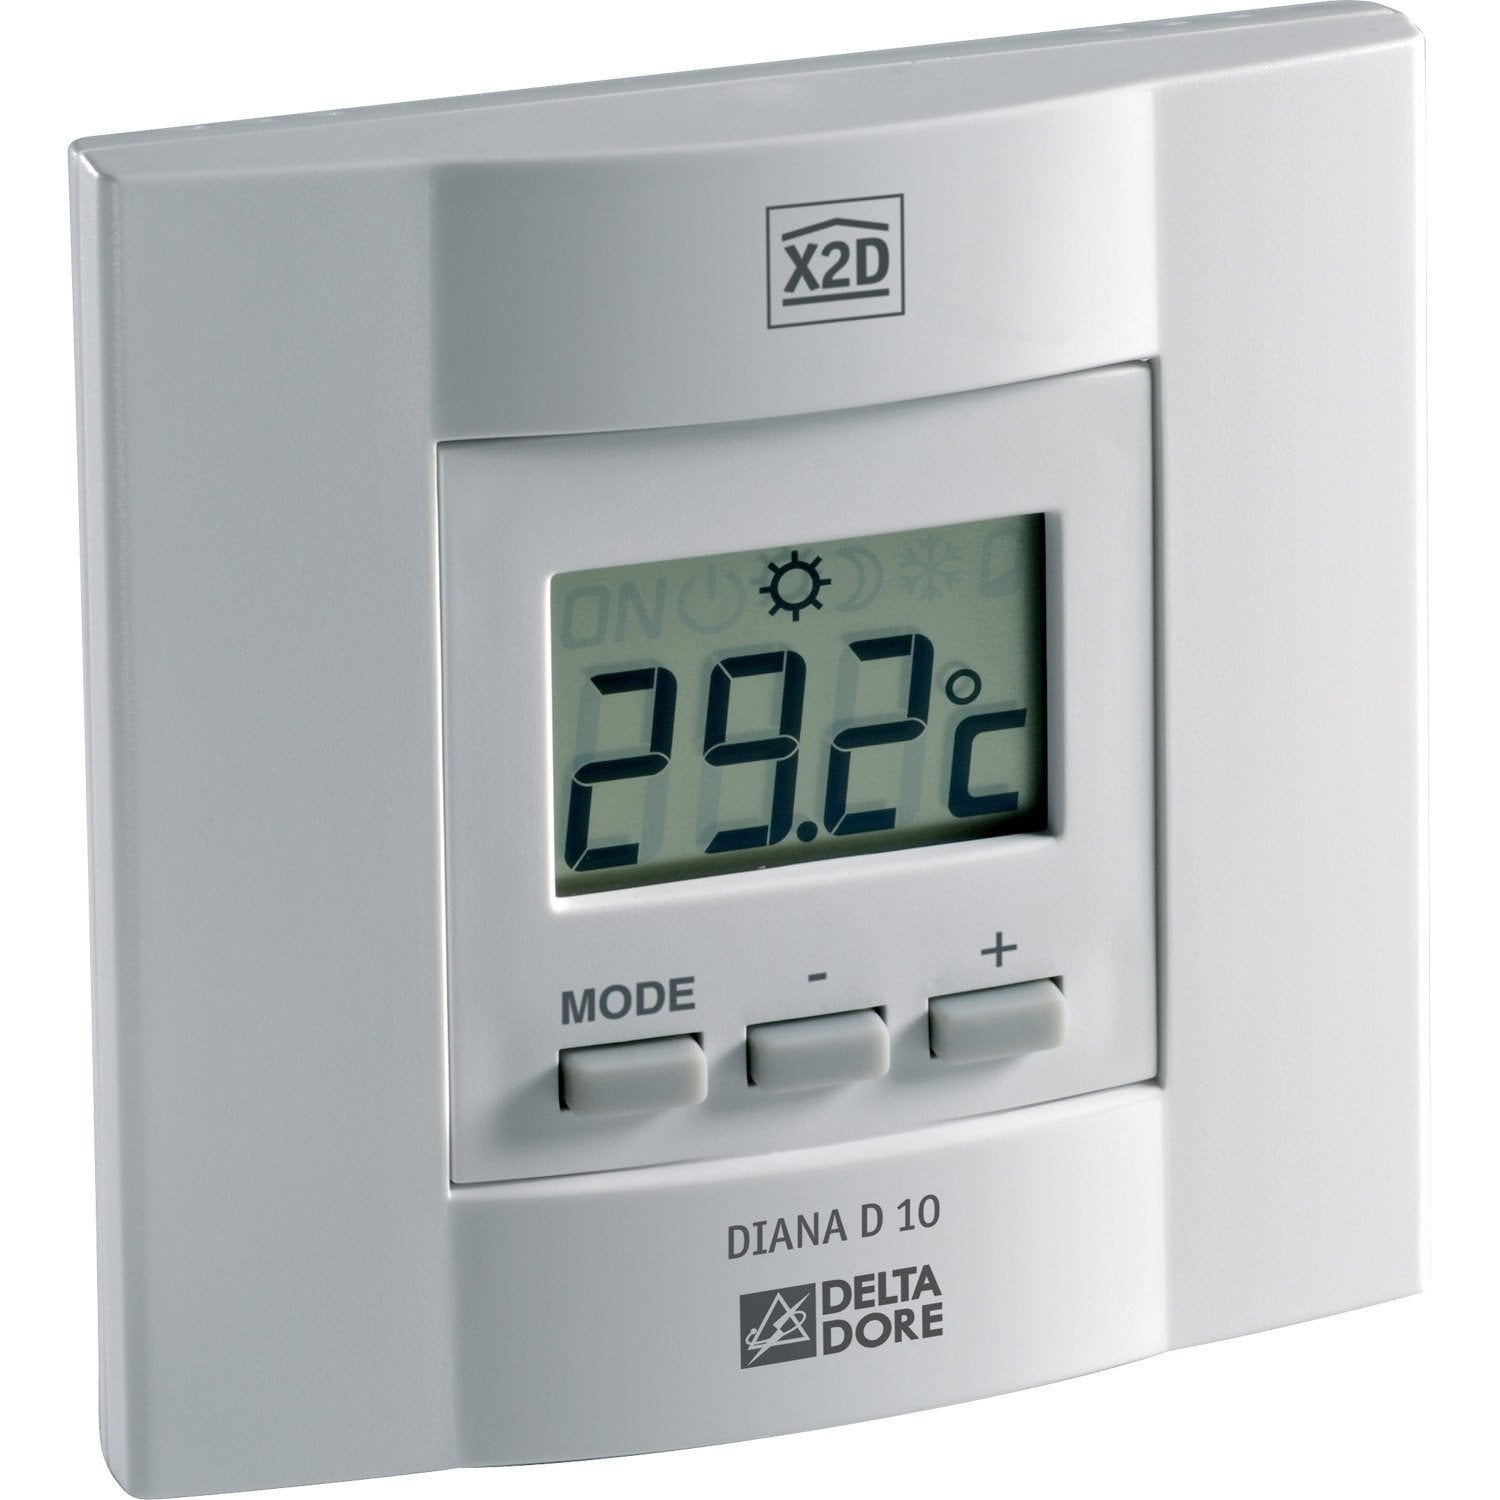 thermostat manuel filaire delta dore diana 10 leroy merlin. Black Bedroom Furniture Sets. Home Design Ideas